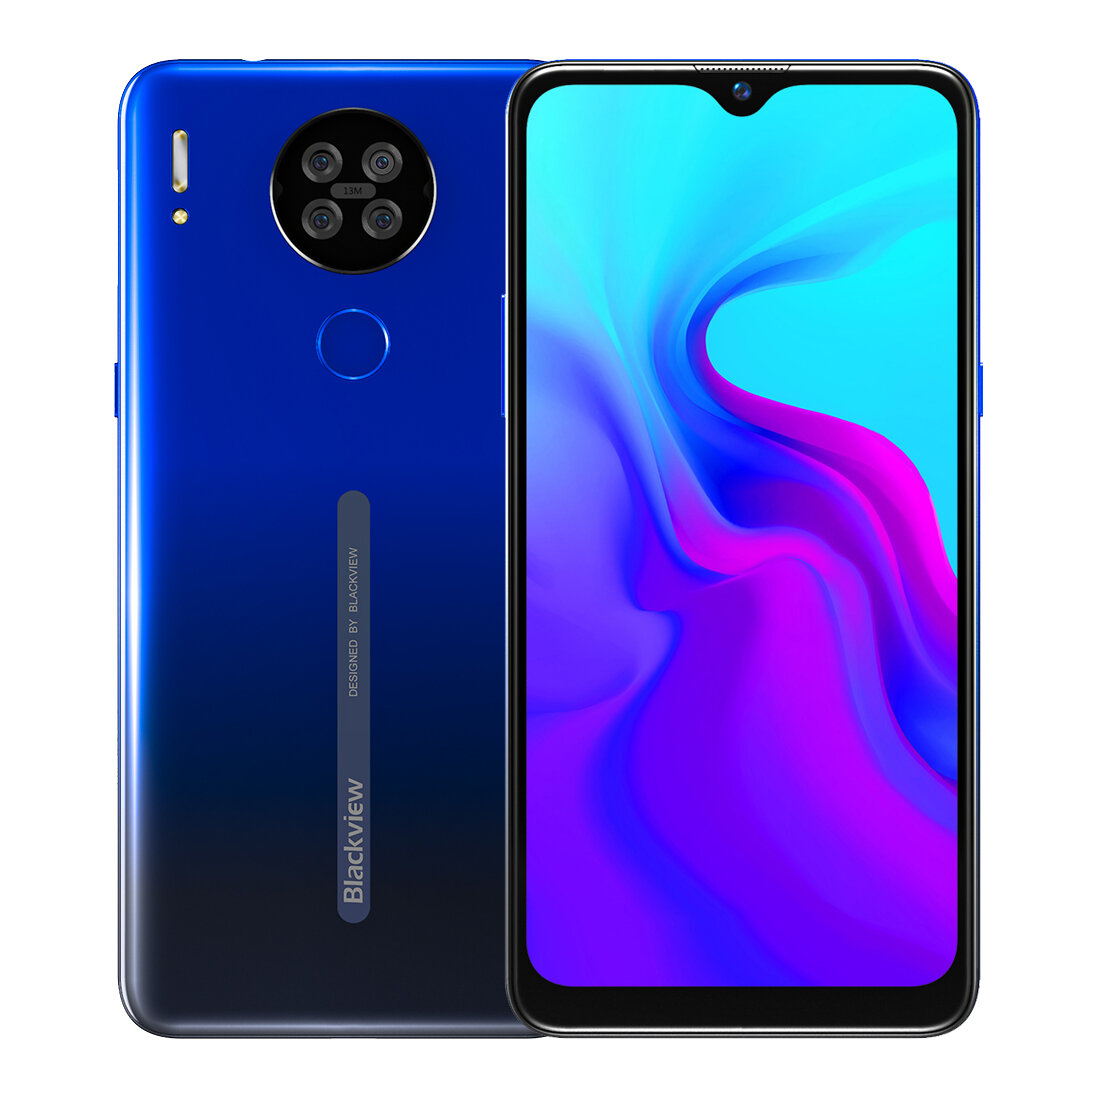 Blackview A80 6.217 inch HD+ Waterdrop Display 3800mAh Android 10 Go 13MP Quad Rear Camera 2GB 16GB MT6737V/W Quad Core 4G Smartphone - Blue